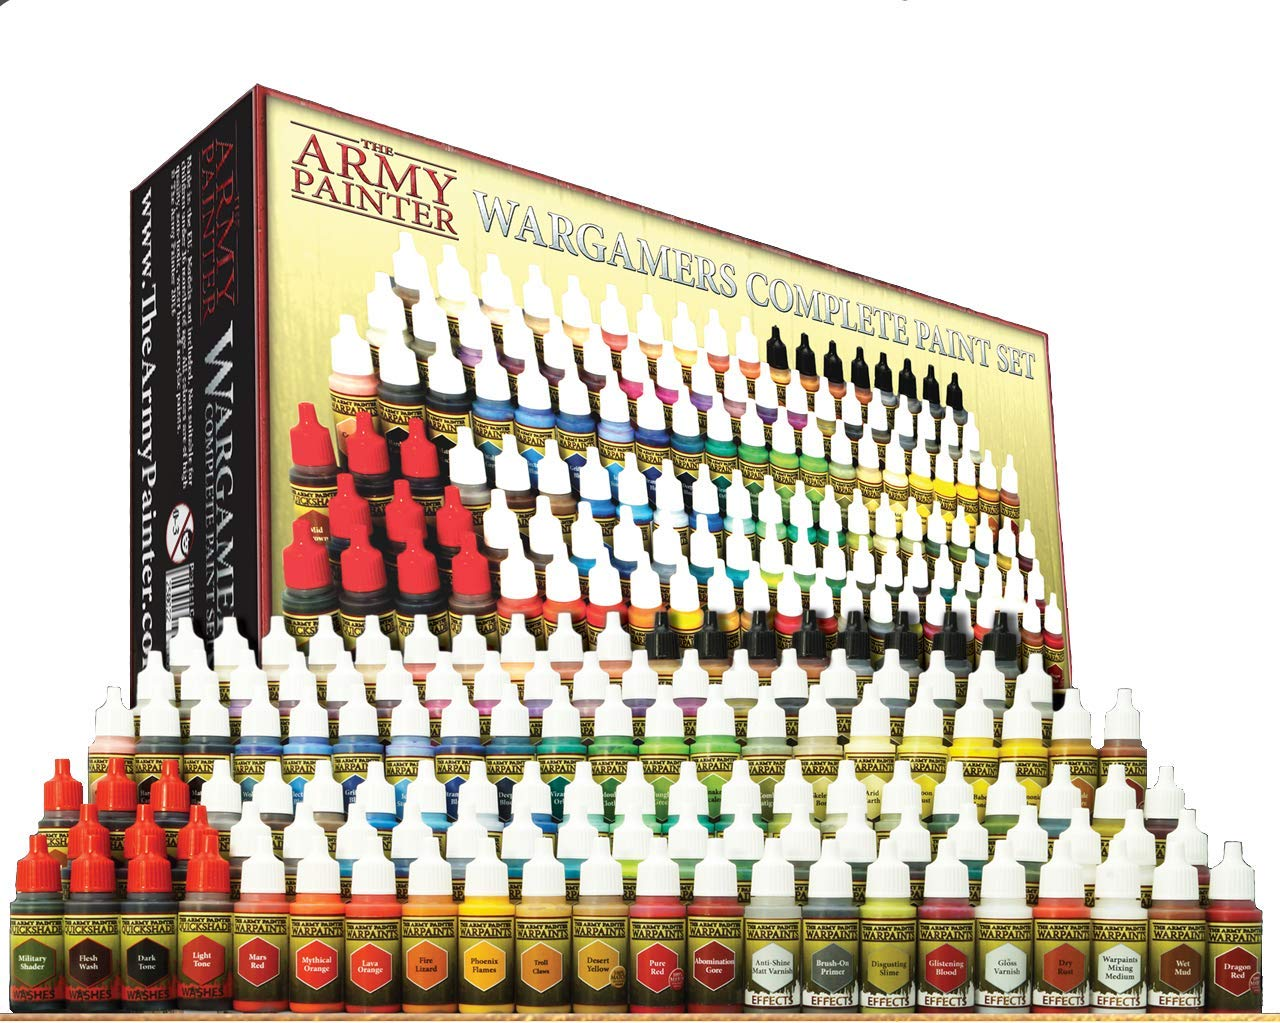 The Army Painter Wargamers Complete Paint Set - Miniature Painting Kit with 124 Model Paints, 5 Bonus Miniatures Paint Brushes and a Free Painting Guide - Miniature Paint Set for Miniature Figures by The Army Painter